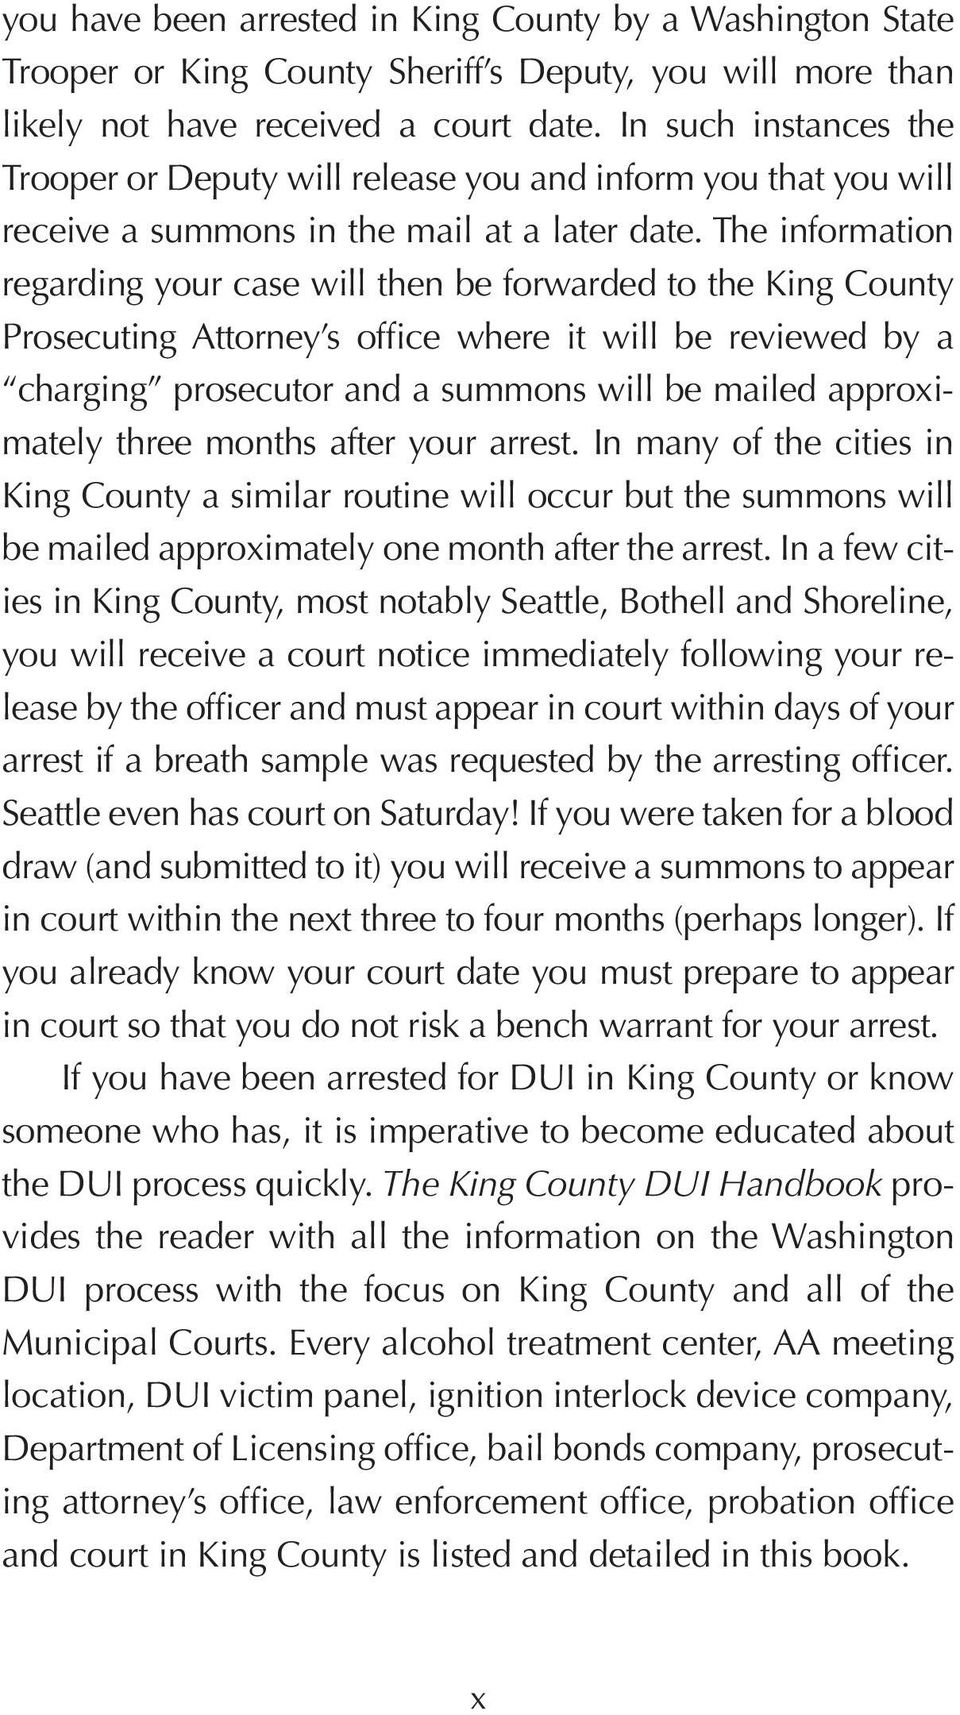 The information regarding your case will then be forwarded to the King County Prosecuting Attorney s office where it will be reviewed by a charging prosecutor and a summons will be mailed